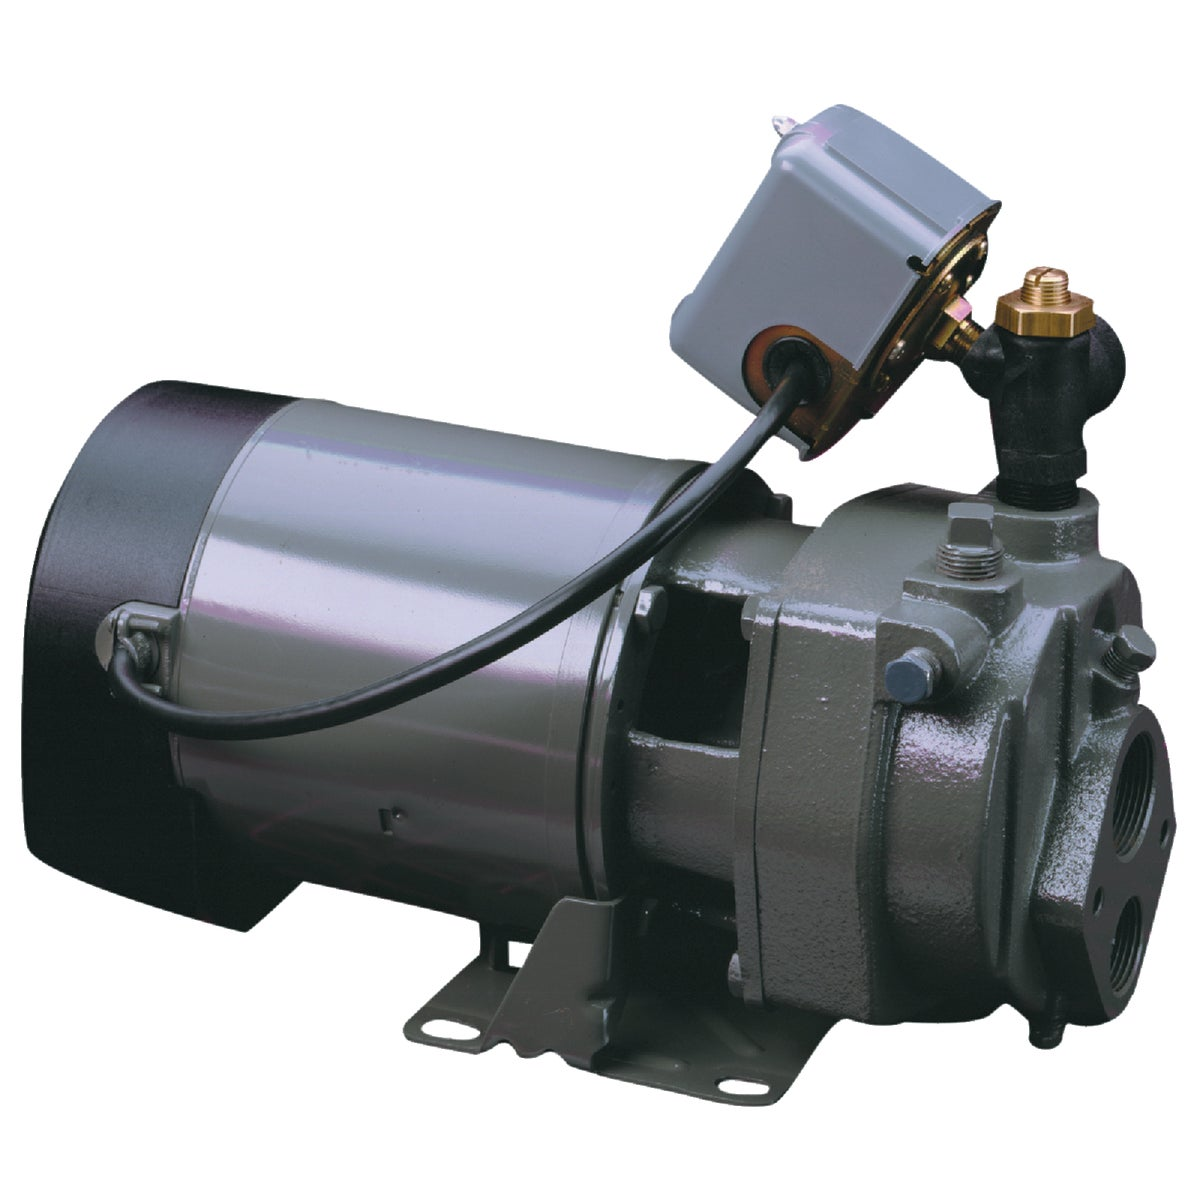 1HP CONV JET WELL PUMP